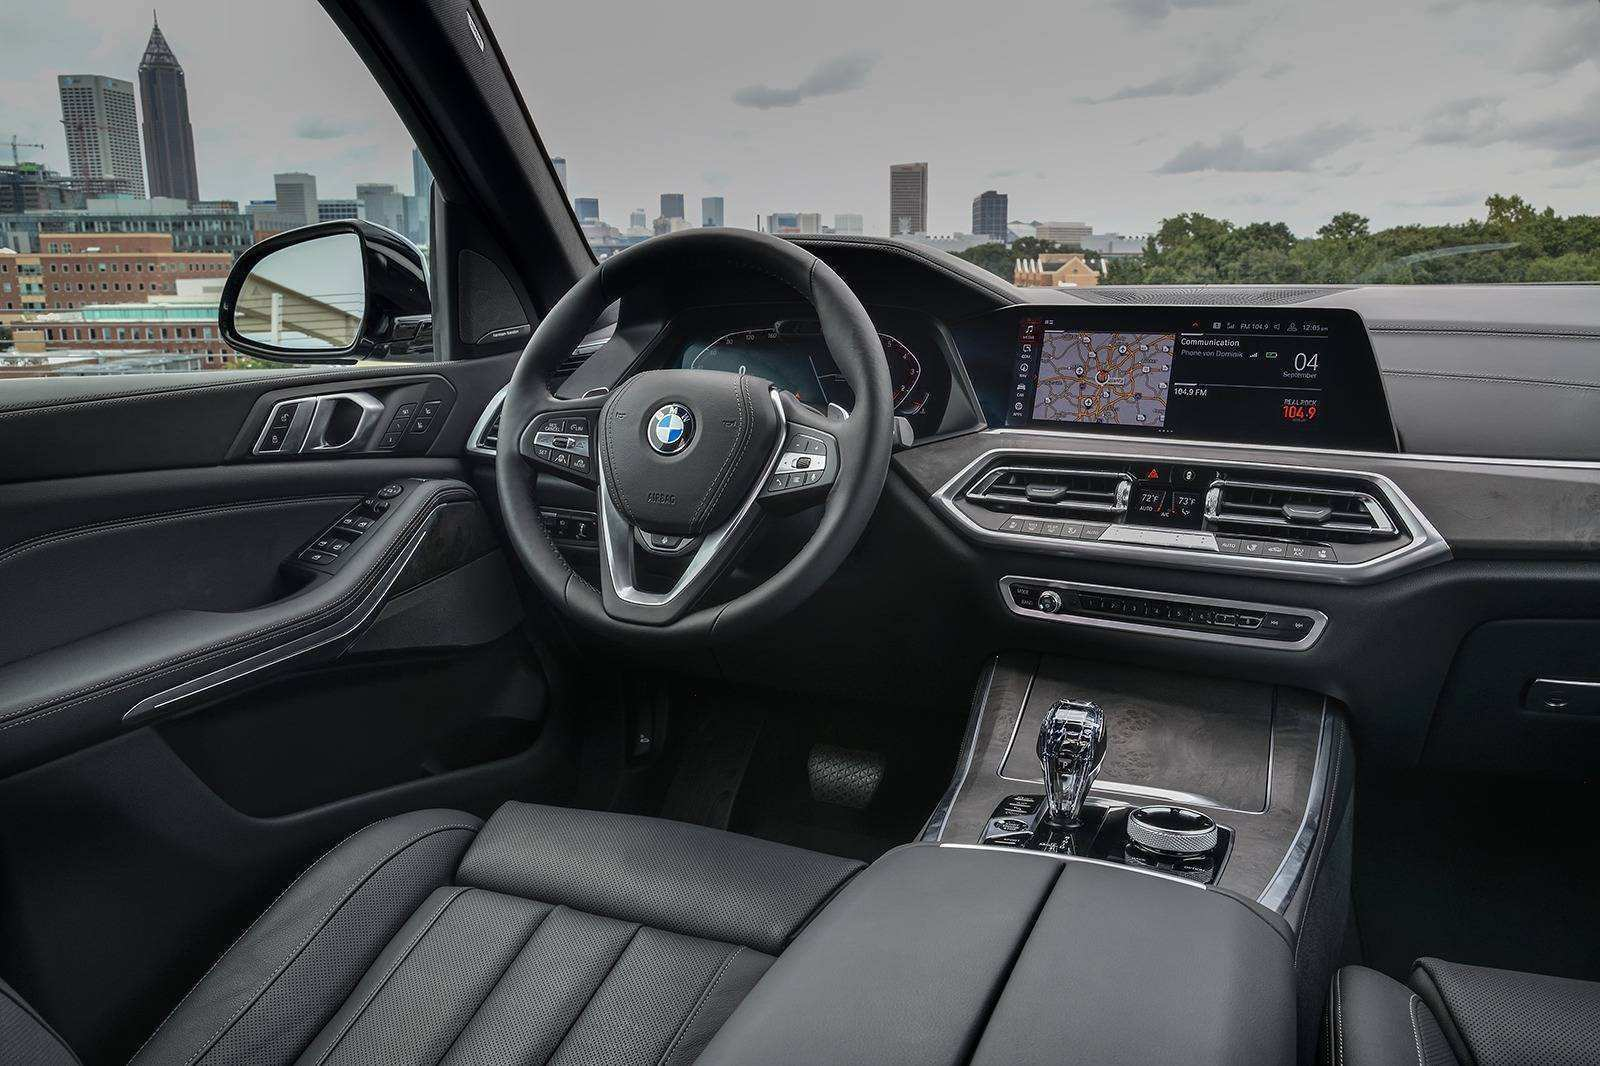 79 All New 2019 Bmw Terrain Interior Spy Shoot